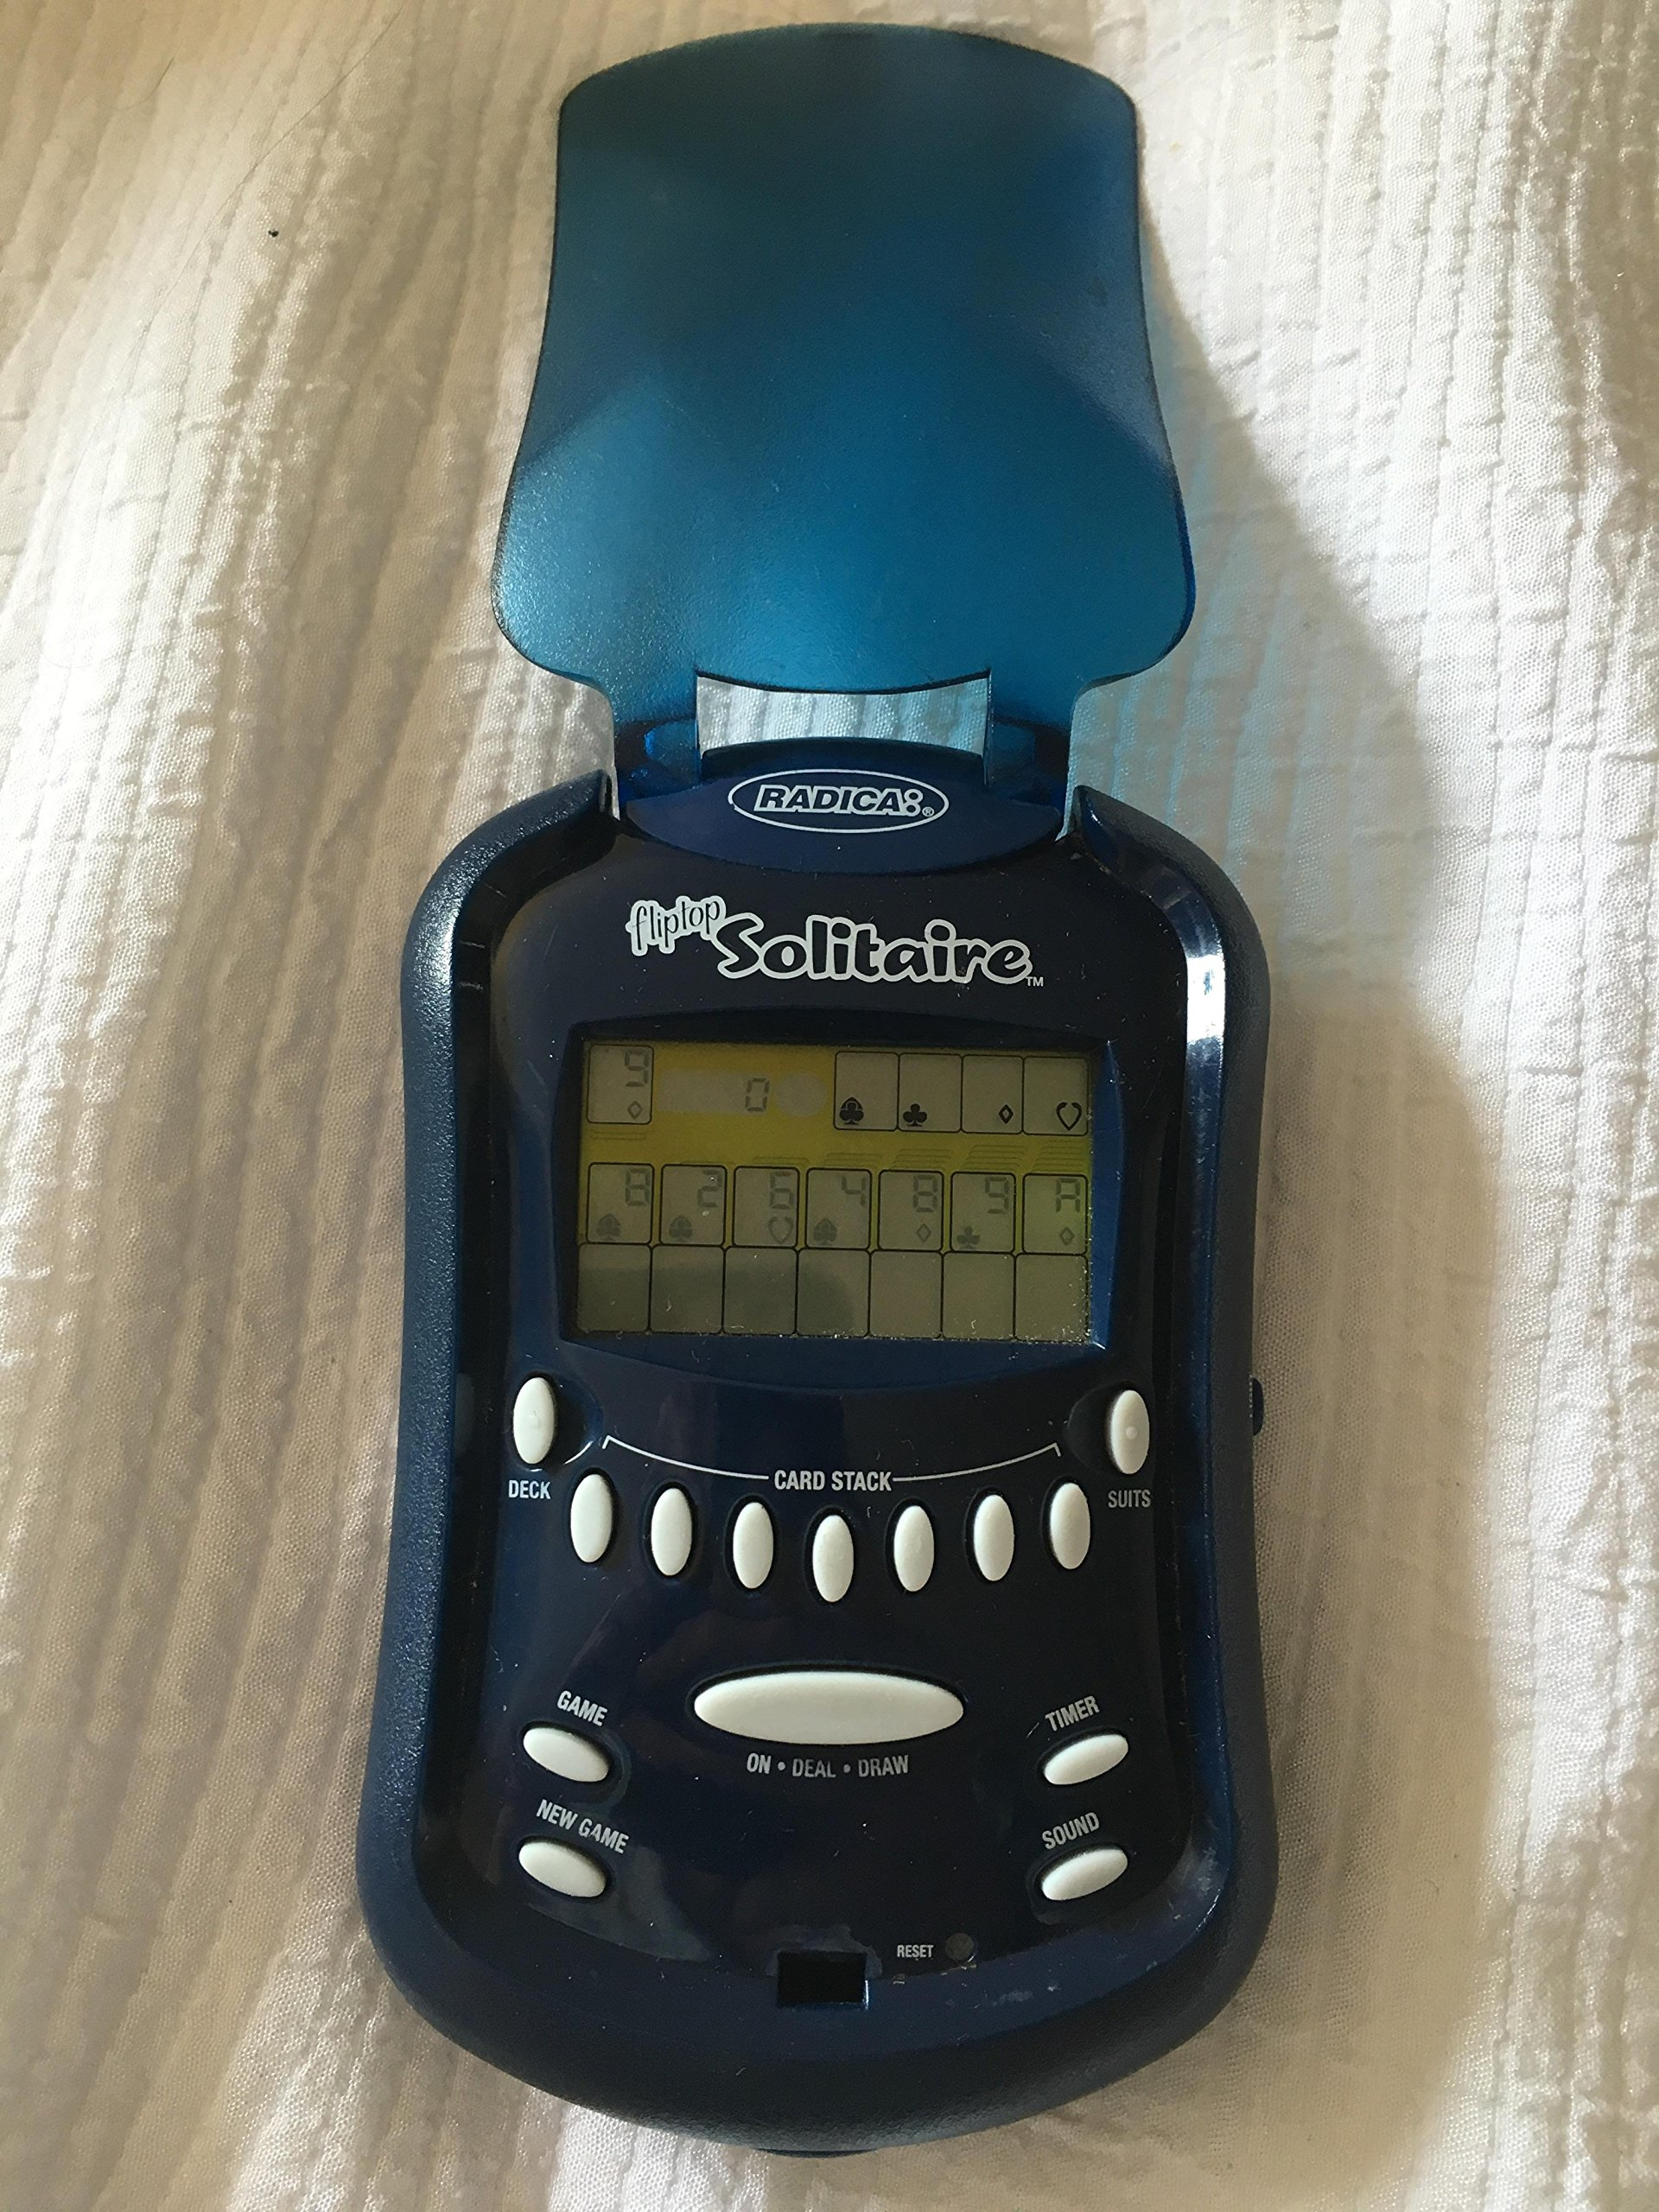 Flip-Top 2 in 1 LIGHTED SOLITAIRE Handheld Game (2006 Edition) by Radica